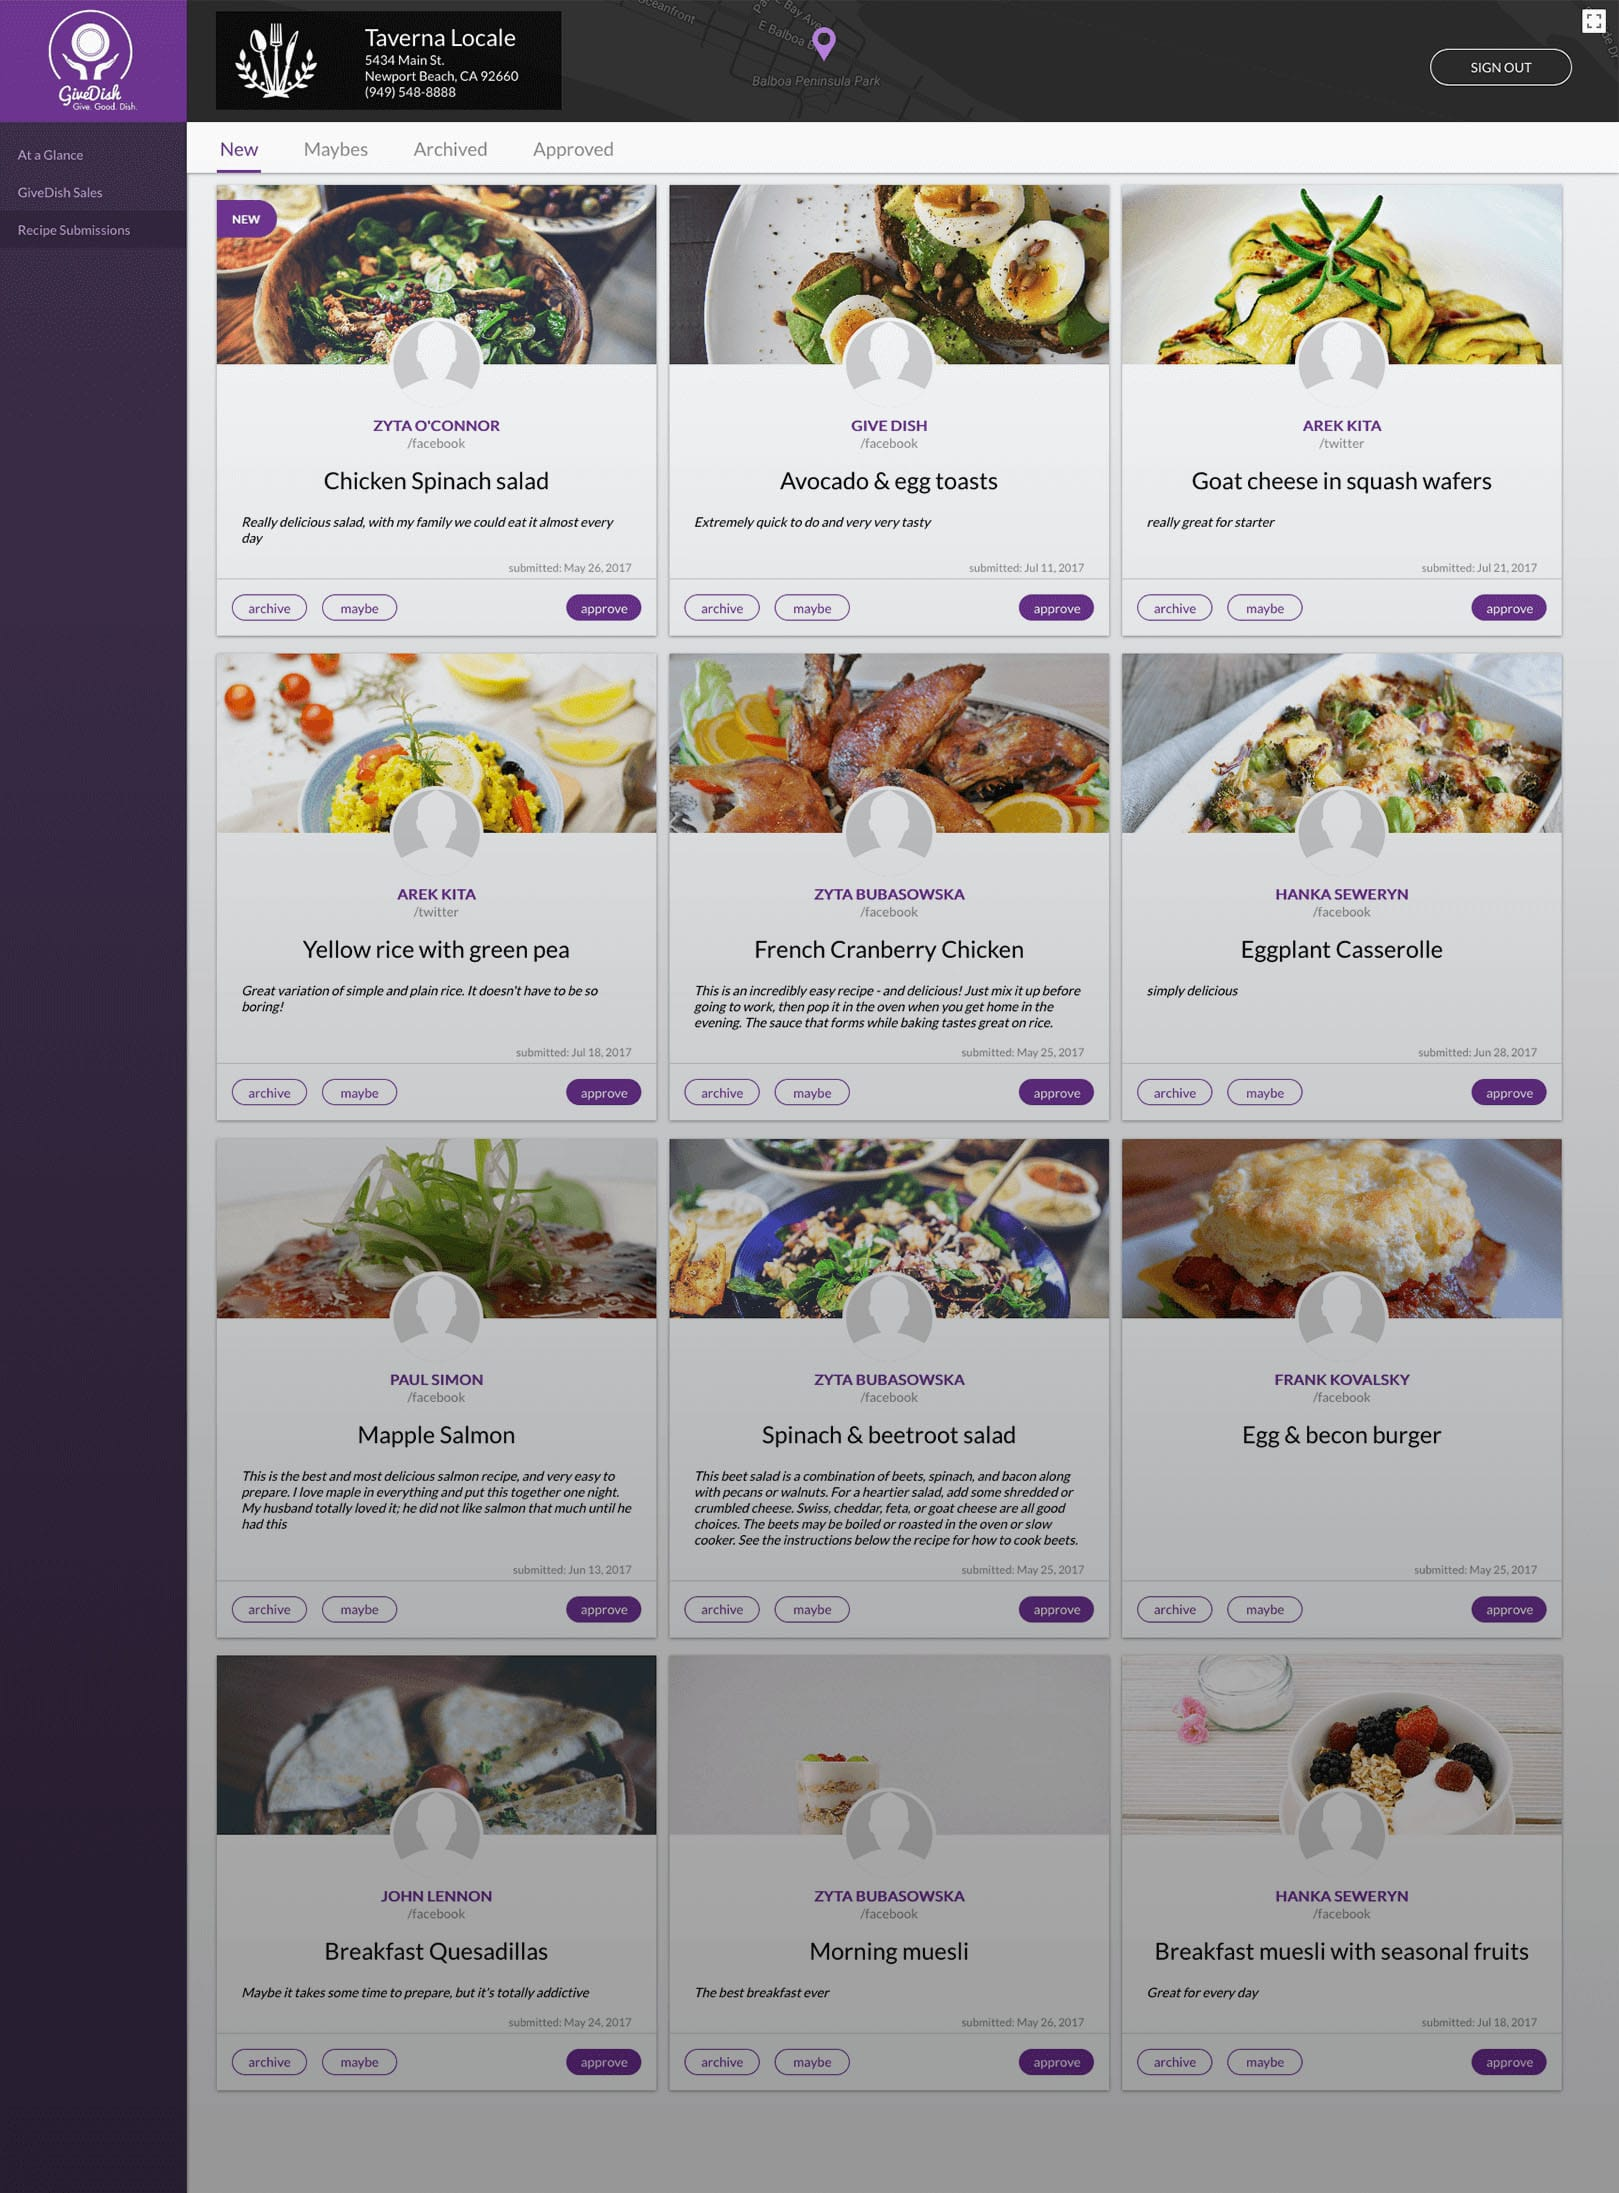 GiveDish - restaurant dashboard for managing menu items for a restaurant participating in a donation program.